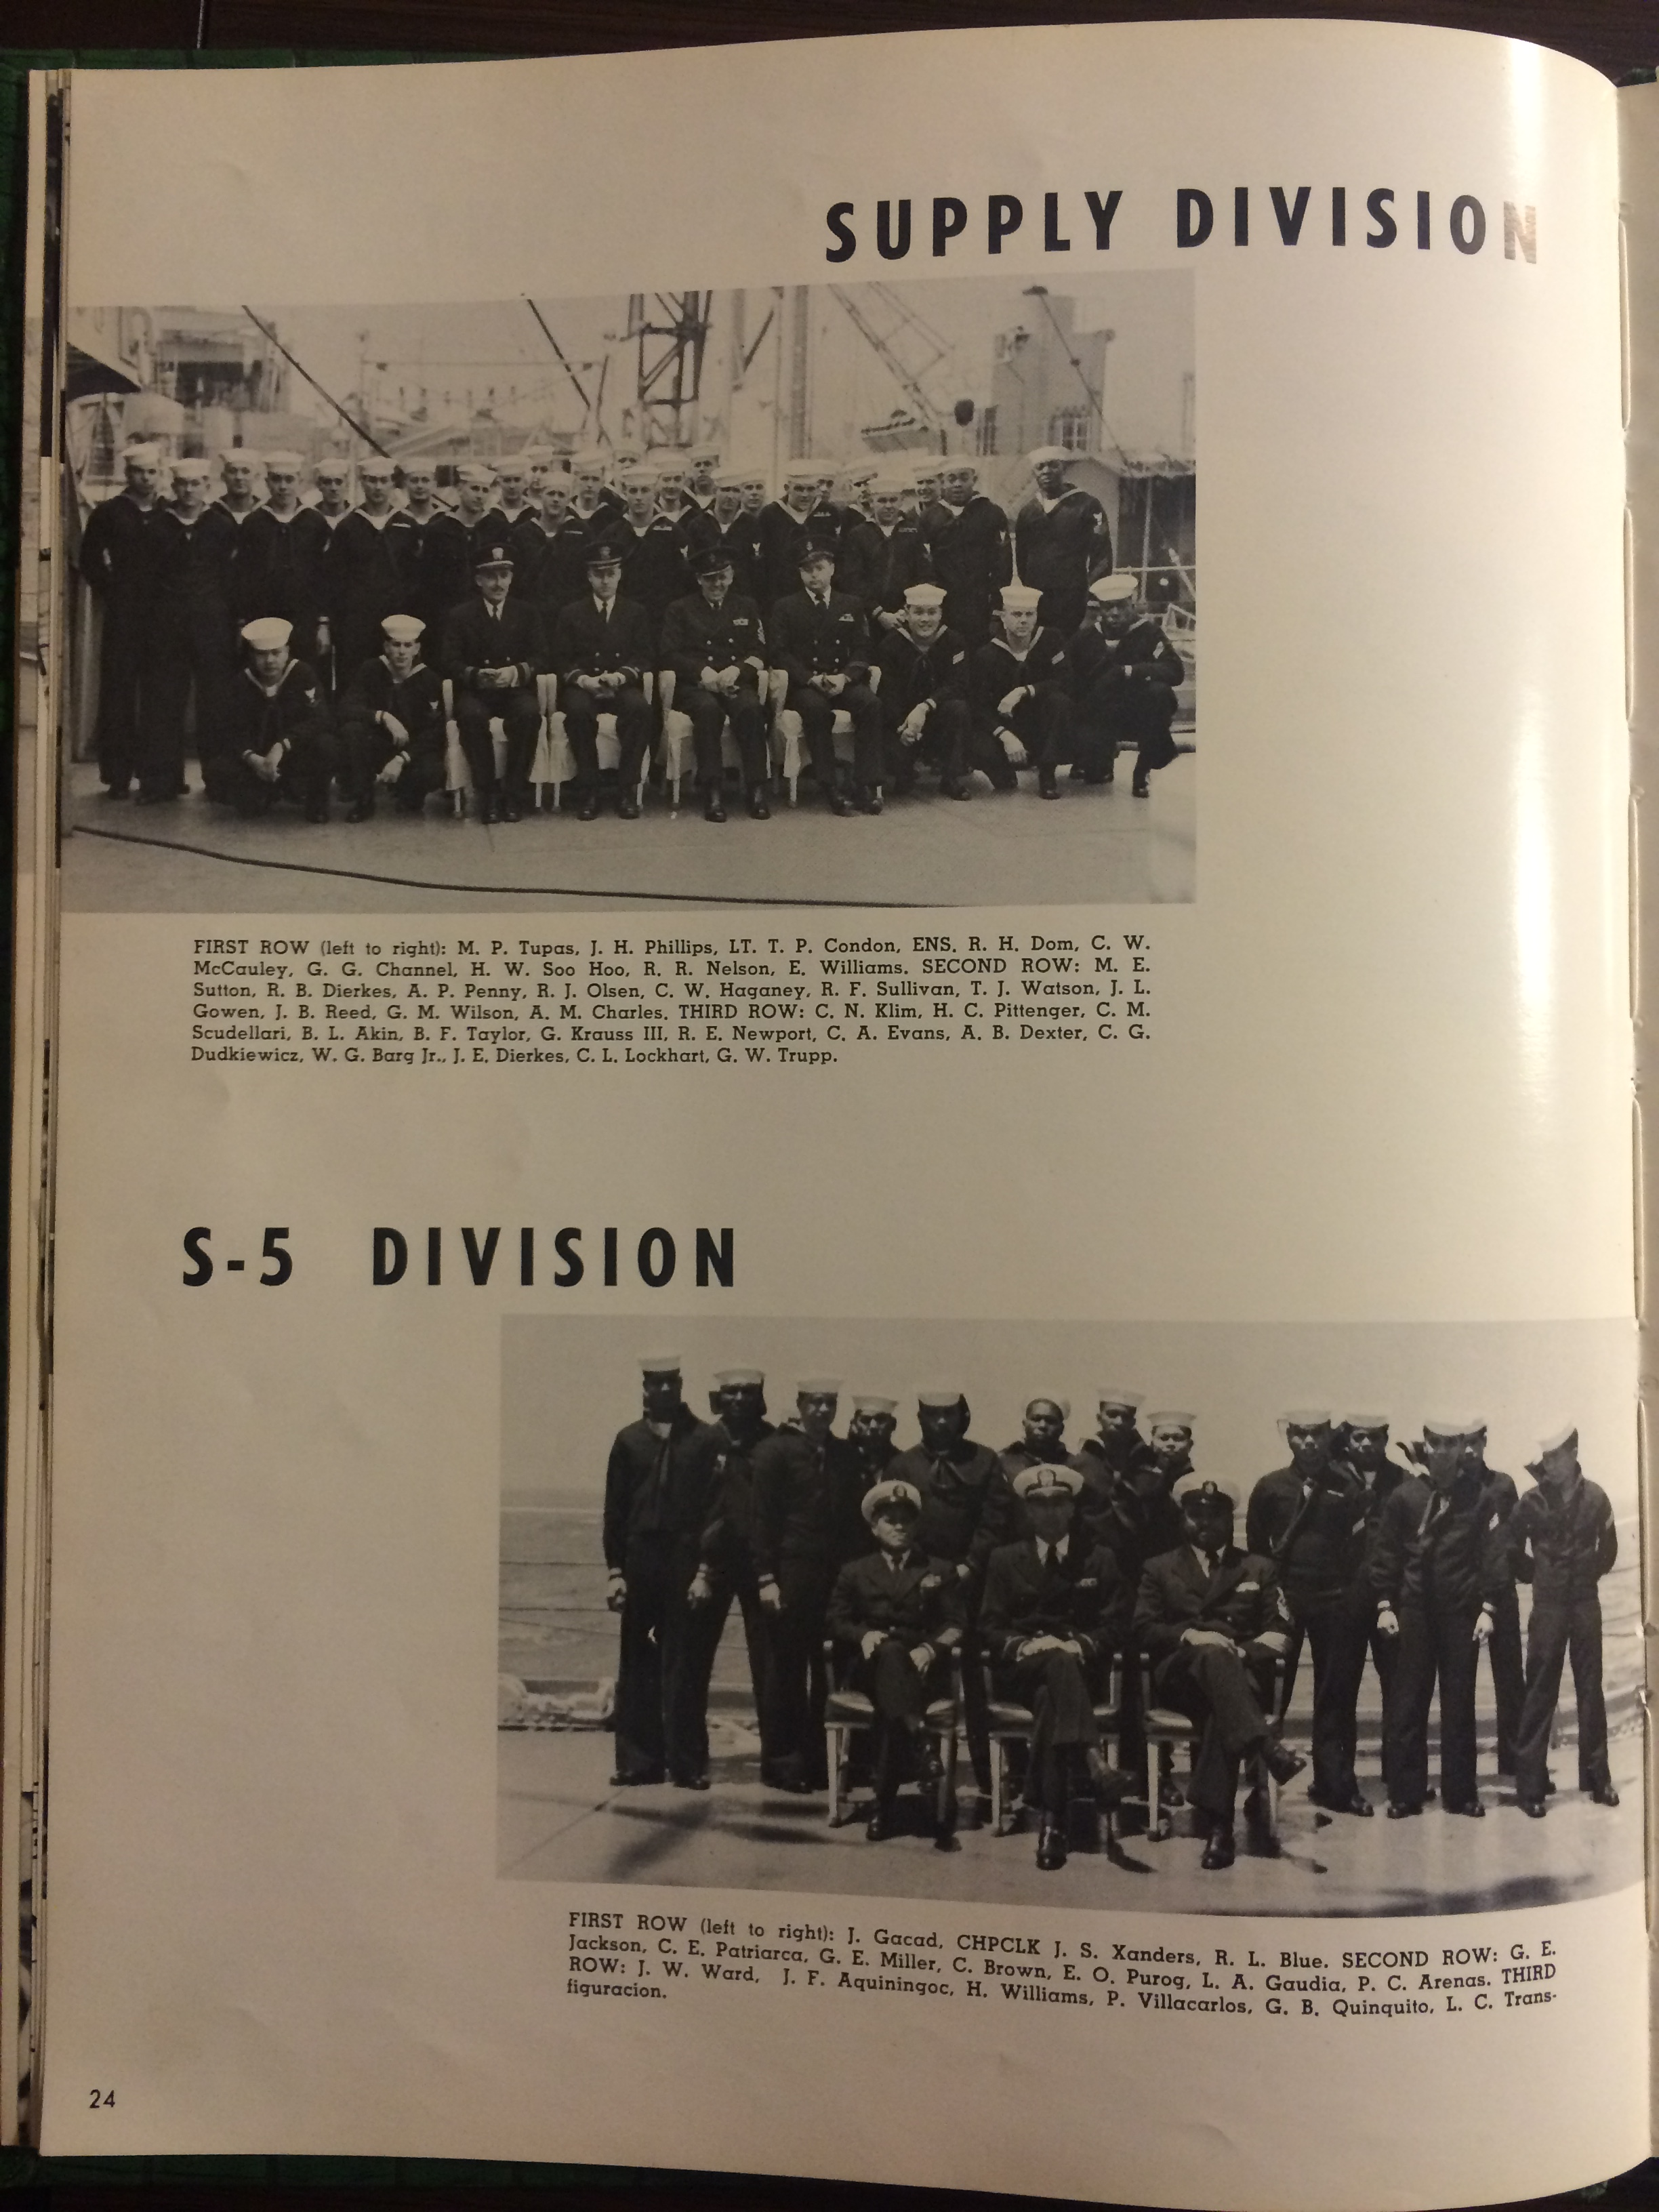 USS Calvert 1956 - Sixth Far East Cruise Book - 023